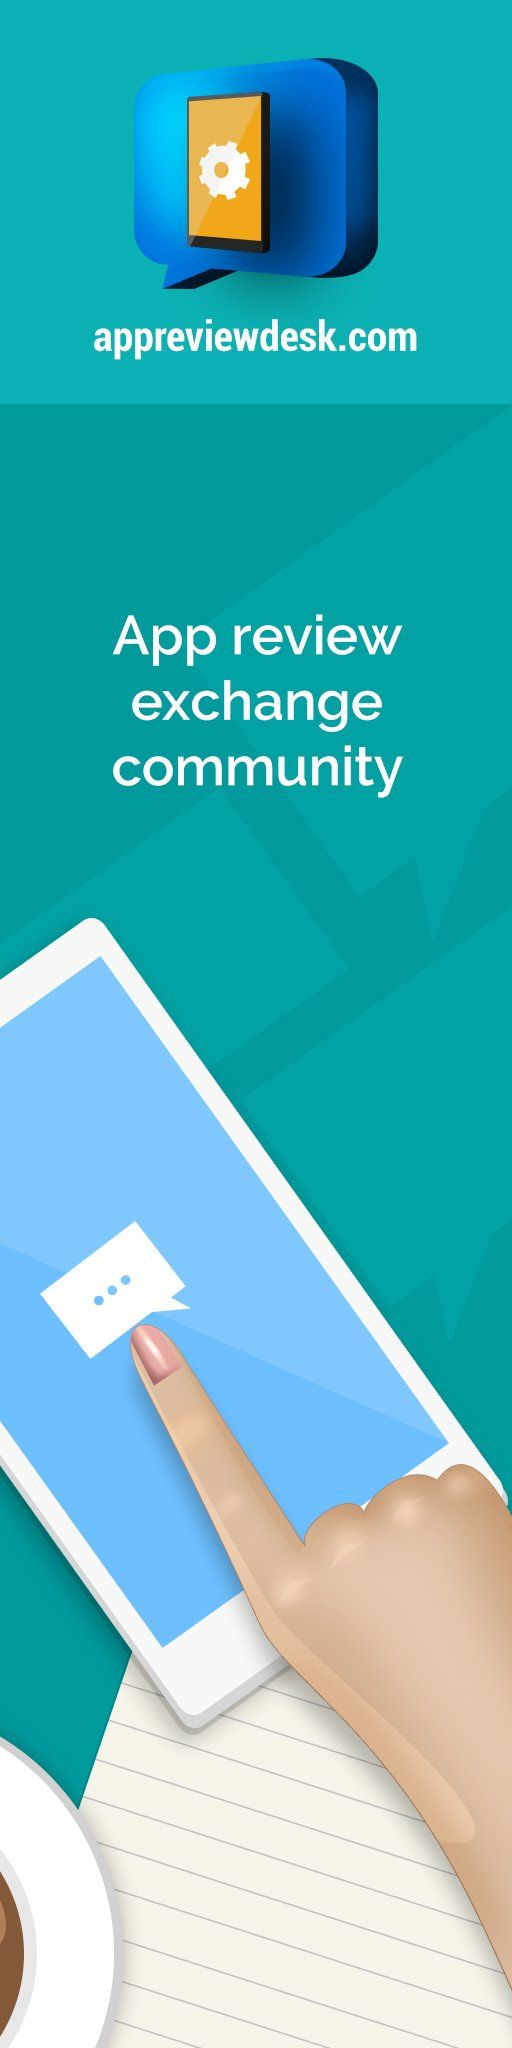 Mobile App Review Exchange Community